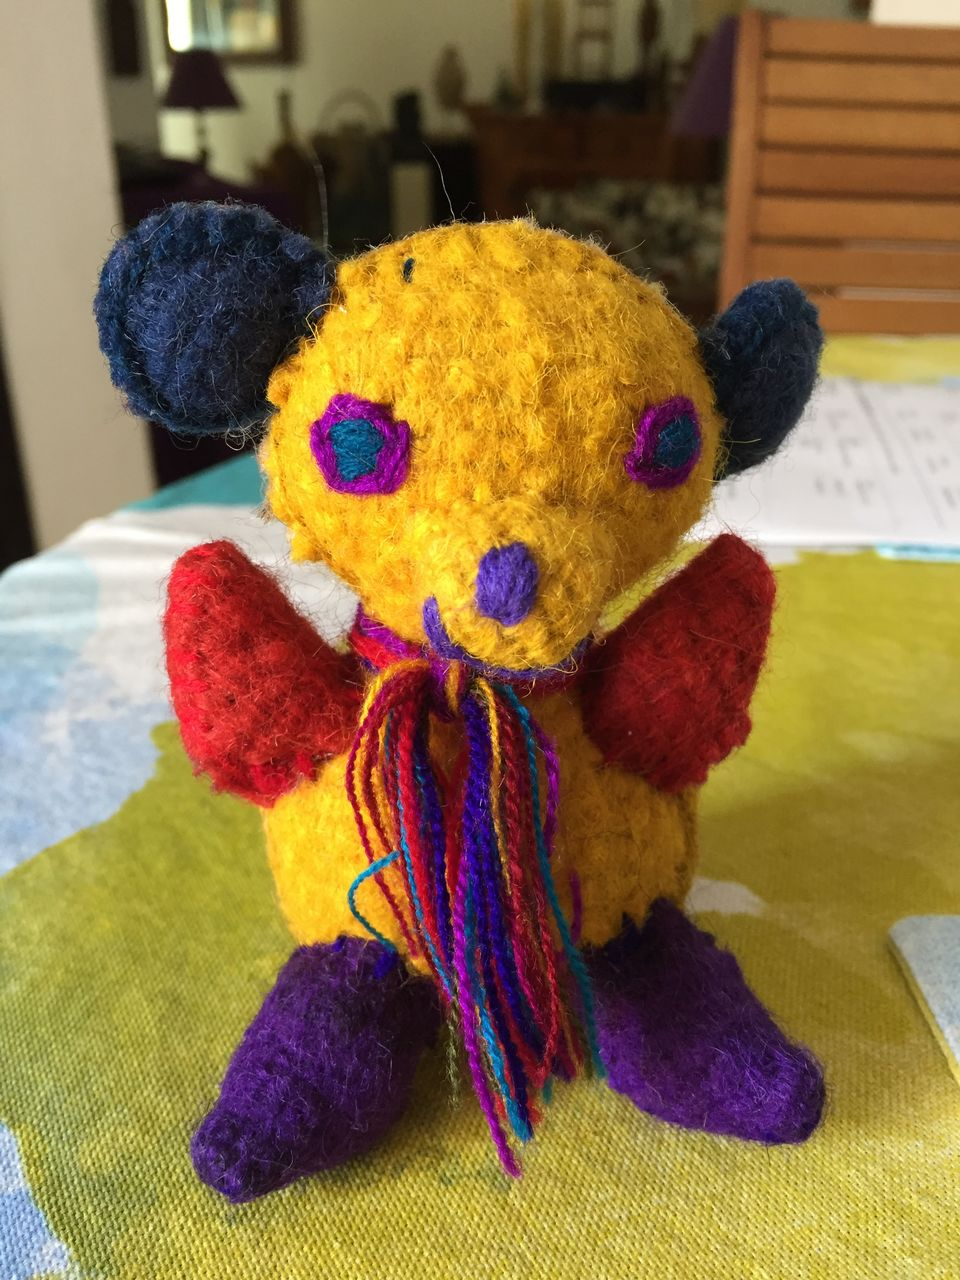 indoors, toy, stuffed toy, teddy bear, close-up, childhood, no people, wool, multi colored, day